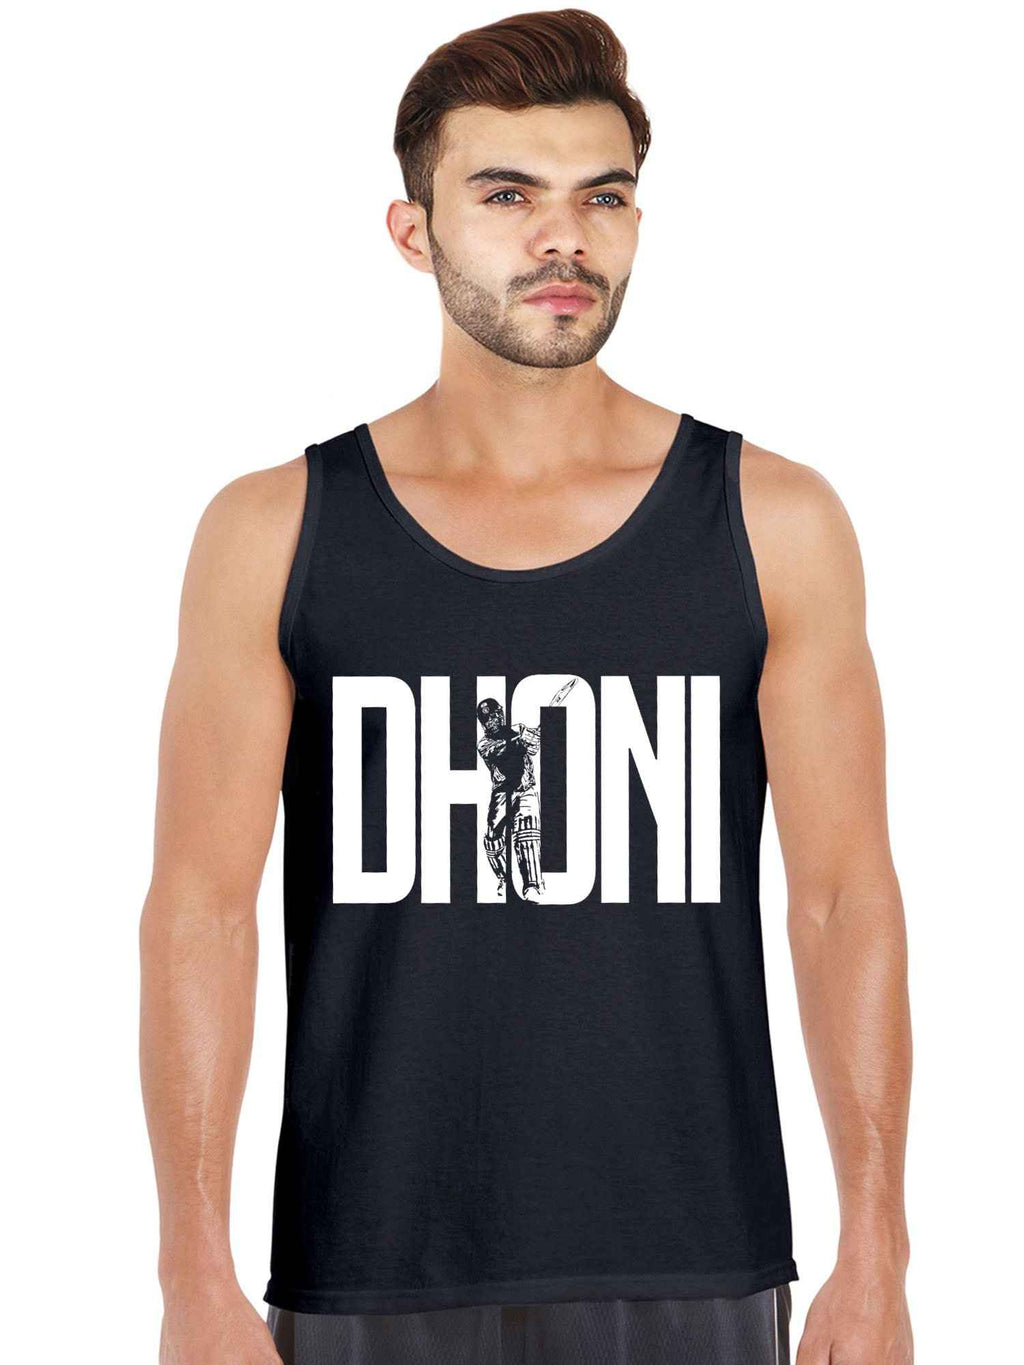 MS Dhoni Printed Sleeveless Tshirt Tank Top - bluehaat